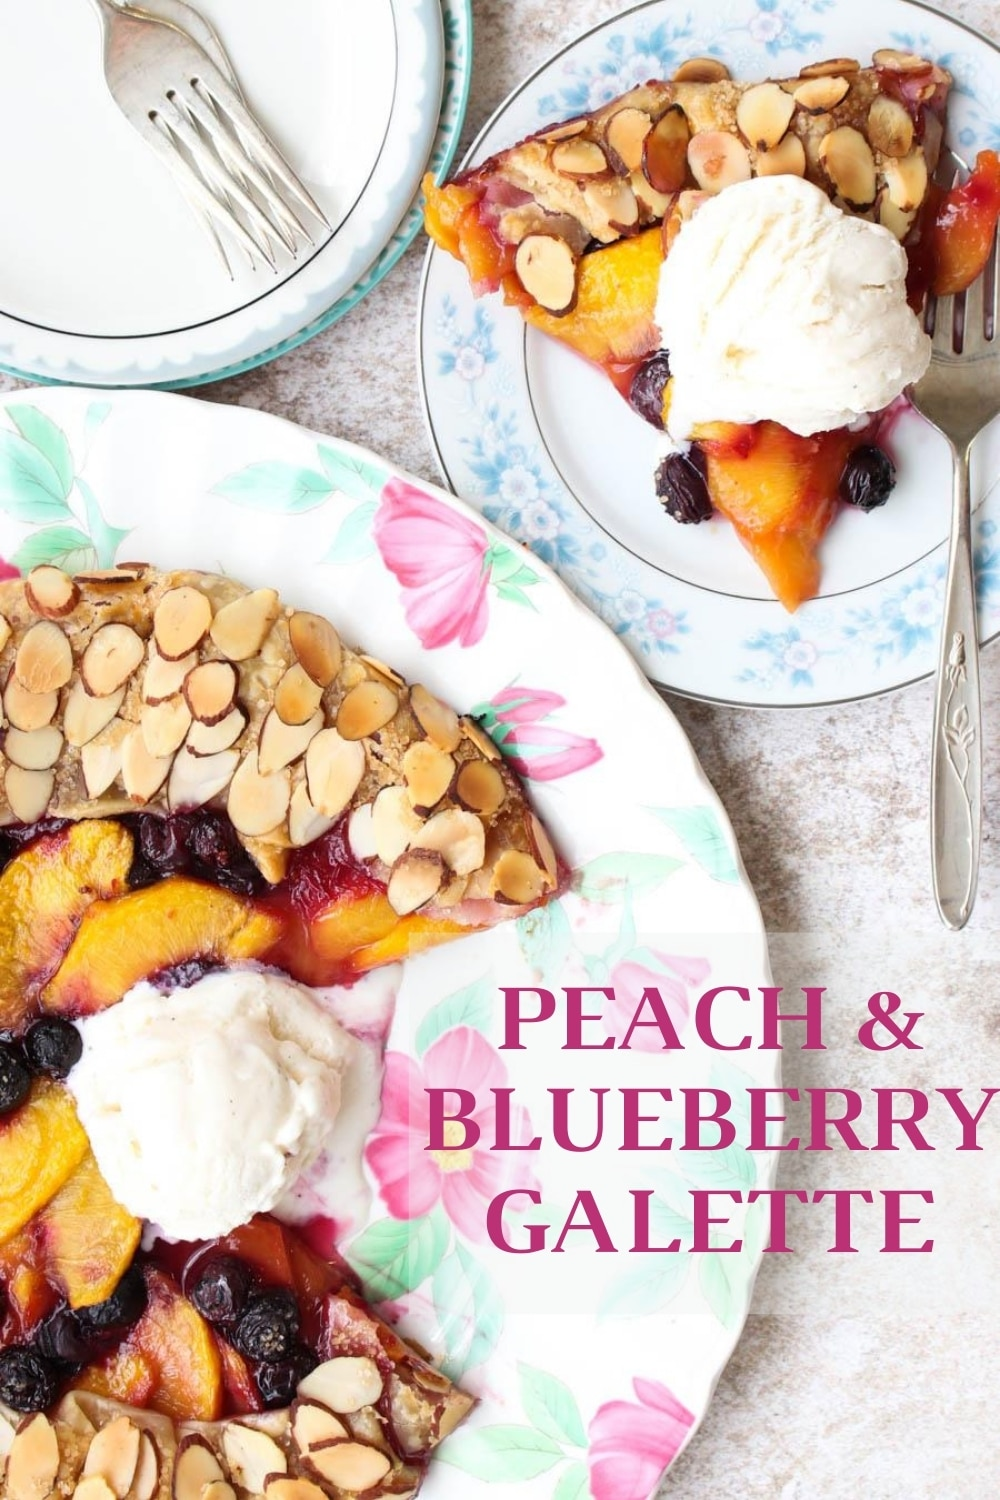 Making a pie is easier than you think. Especially if you make a rustic galette. I've filled this galette with fresh peaches and blueberries and covered the crust with crunchy sliced almonds. Homemade taste without any fuss. via @krazykitchenmom